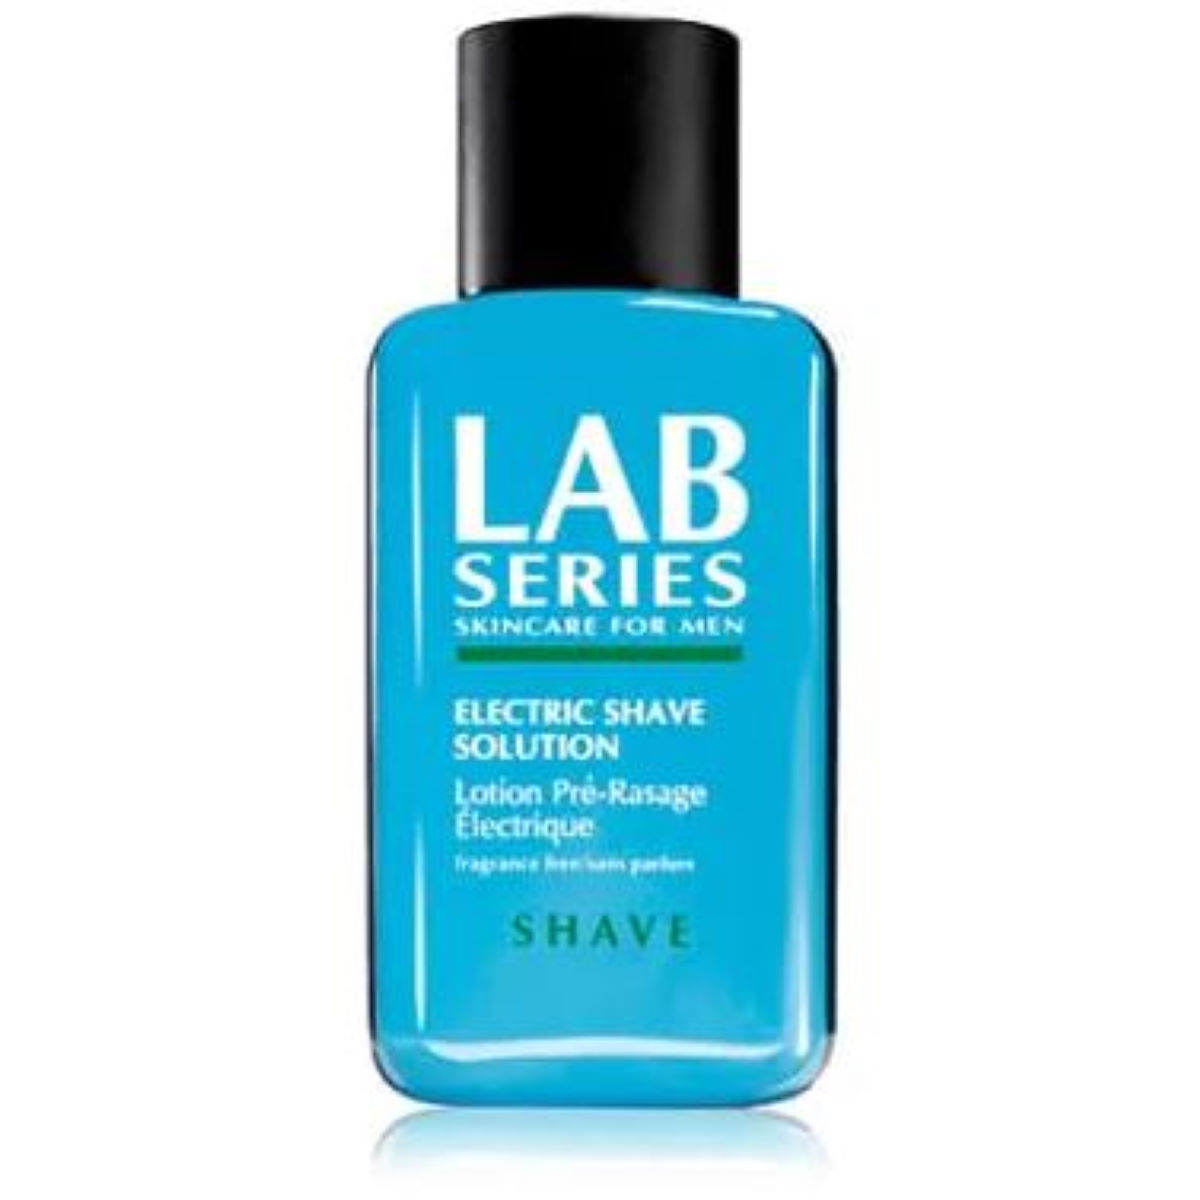 Lab Series Electric Shave Solution 100ml - Cremas musculares